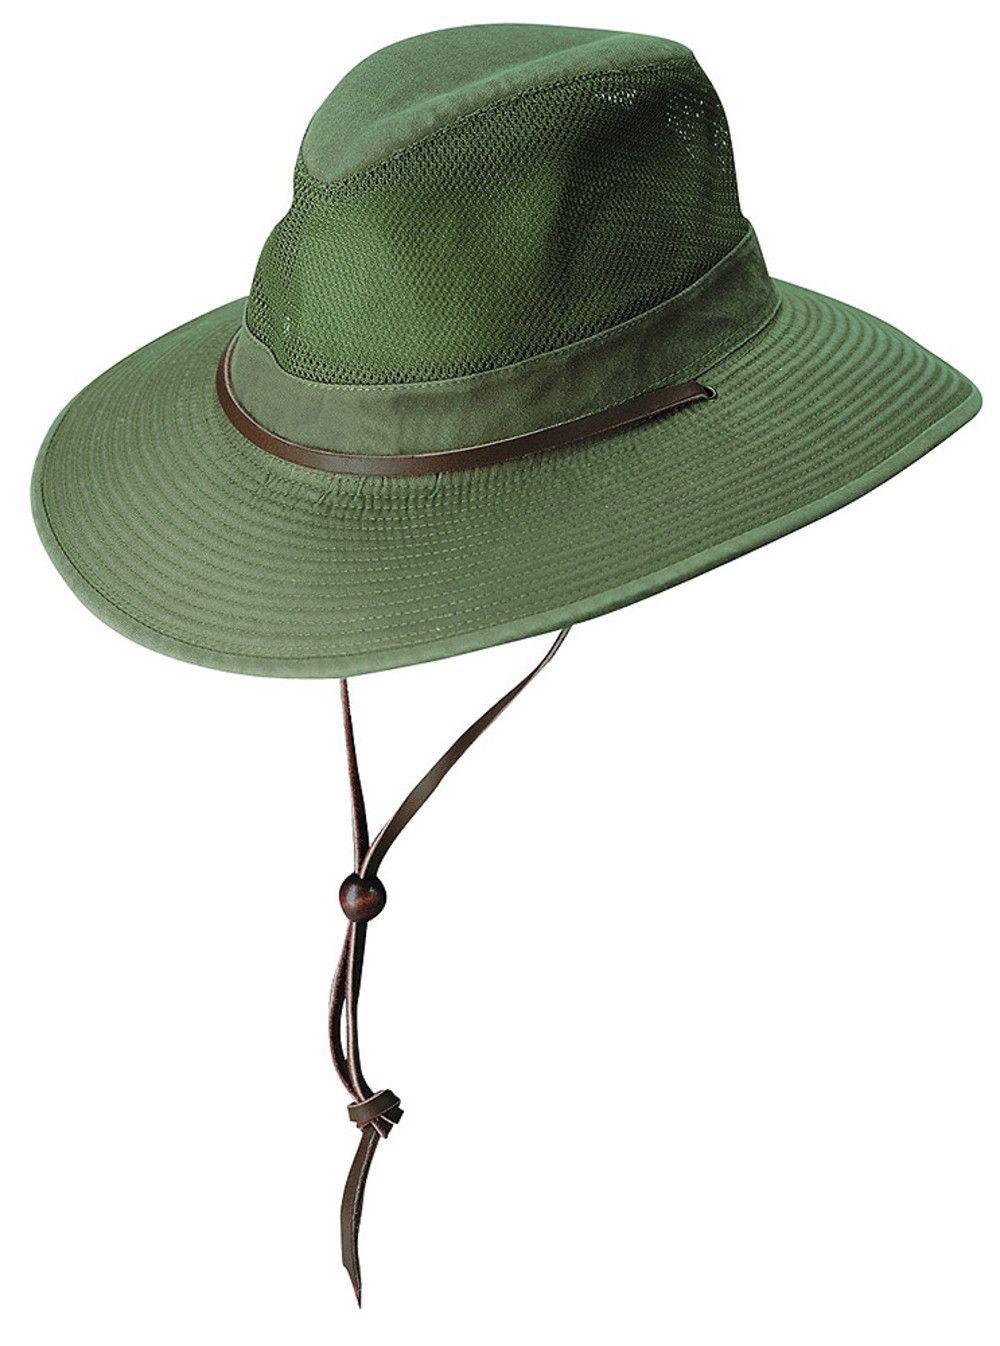 83d43be1e4c Washed Twill Mesh Safari Hat by DPC Outdoor Design